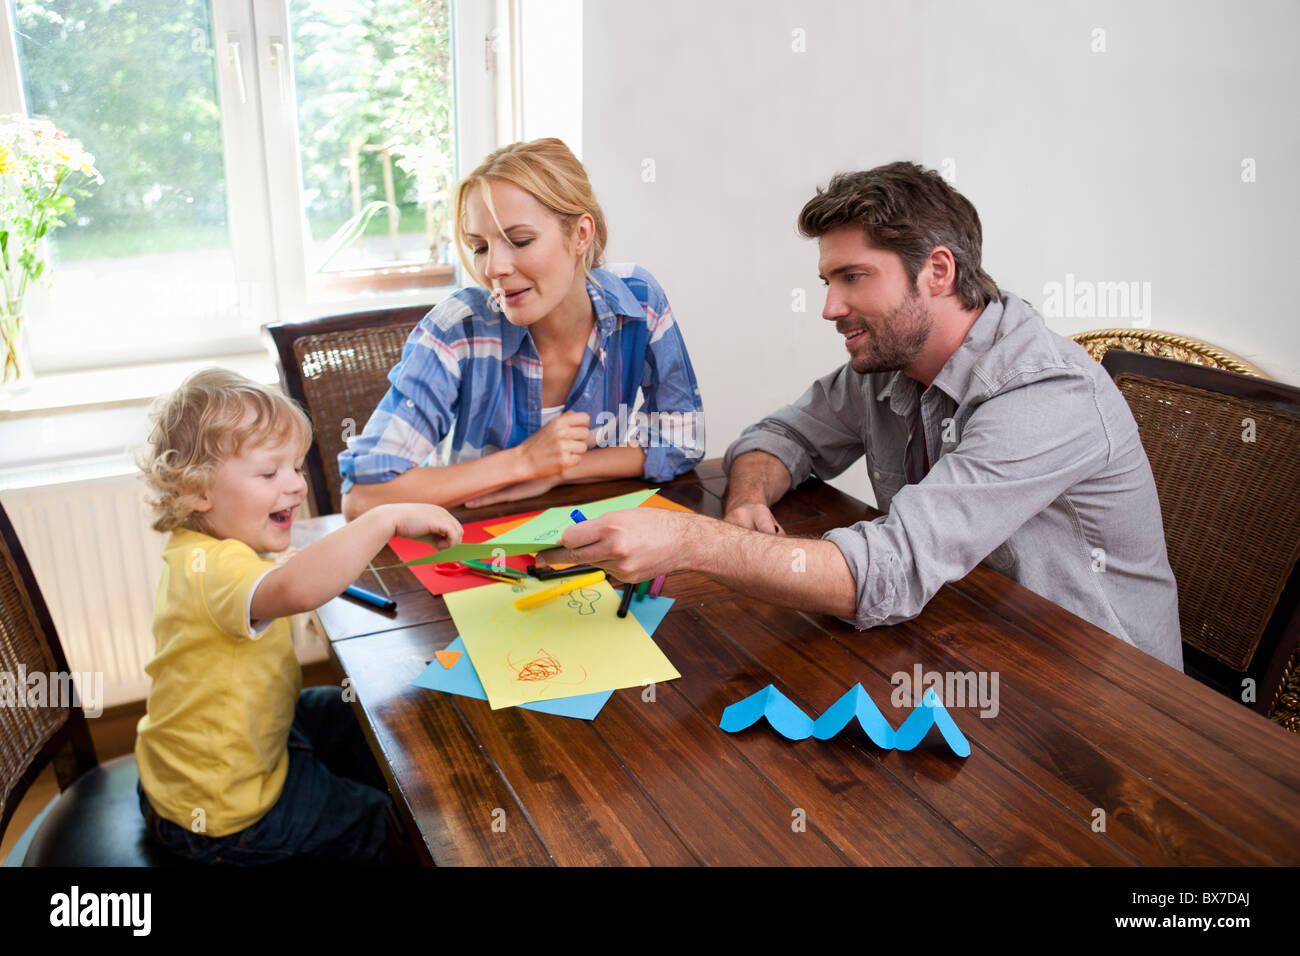 Family handcrafting on table - Stock Image